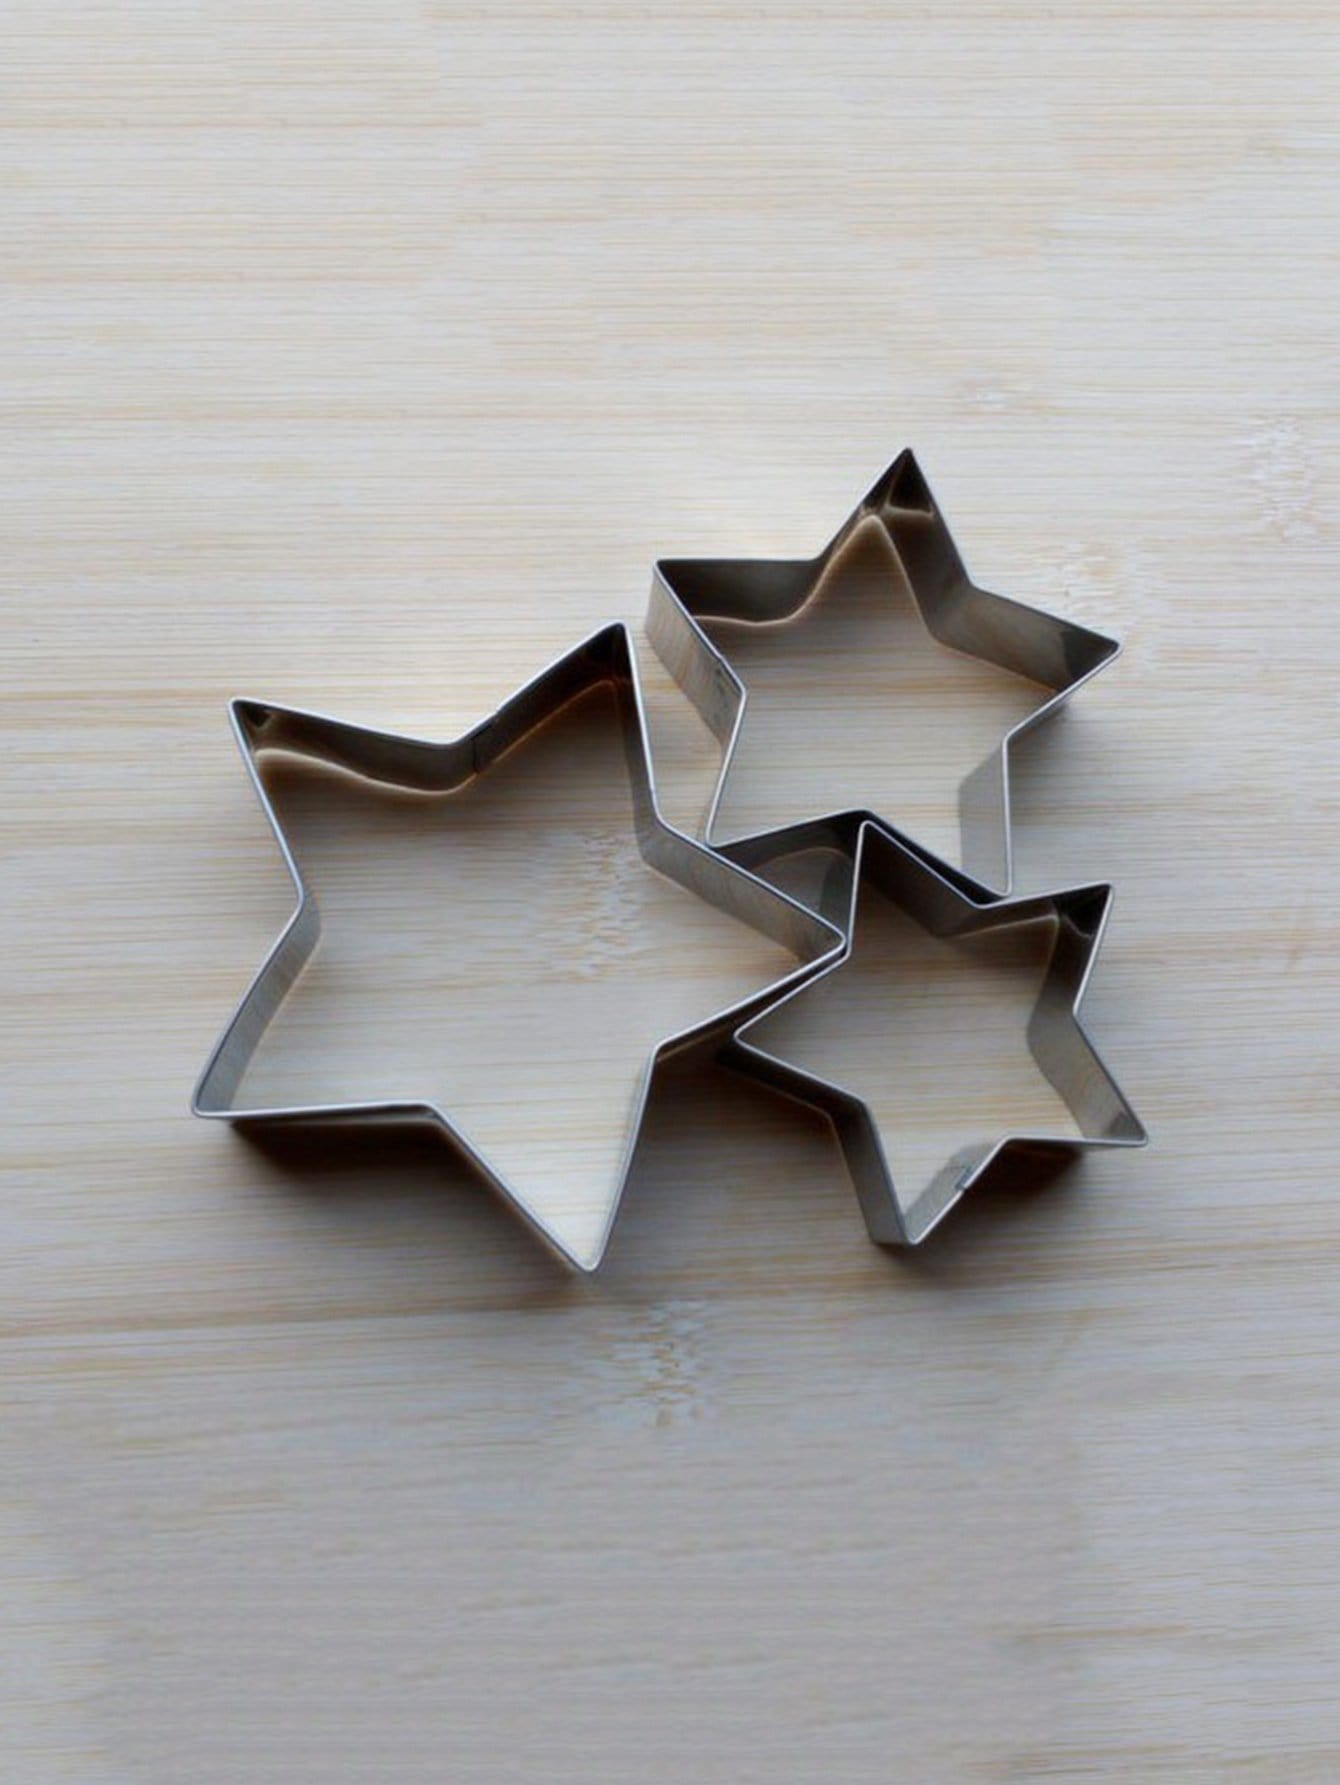 Stainless Steel Star Cookie Cutter 3pcs 3pcs stainless steel snowman cookie cutter cake biscuit decorating tool